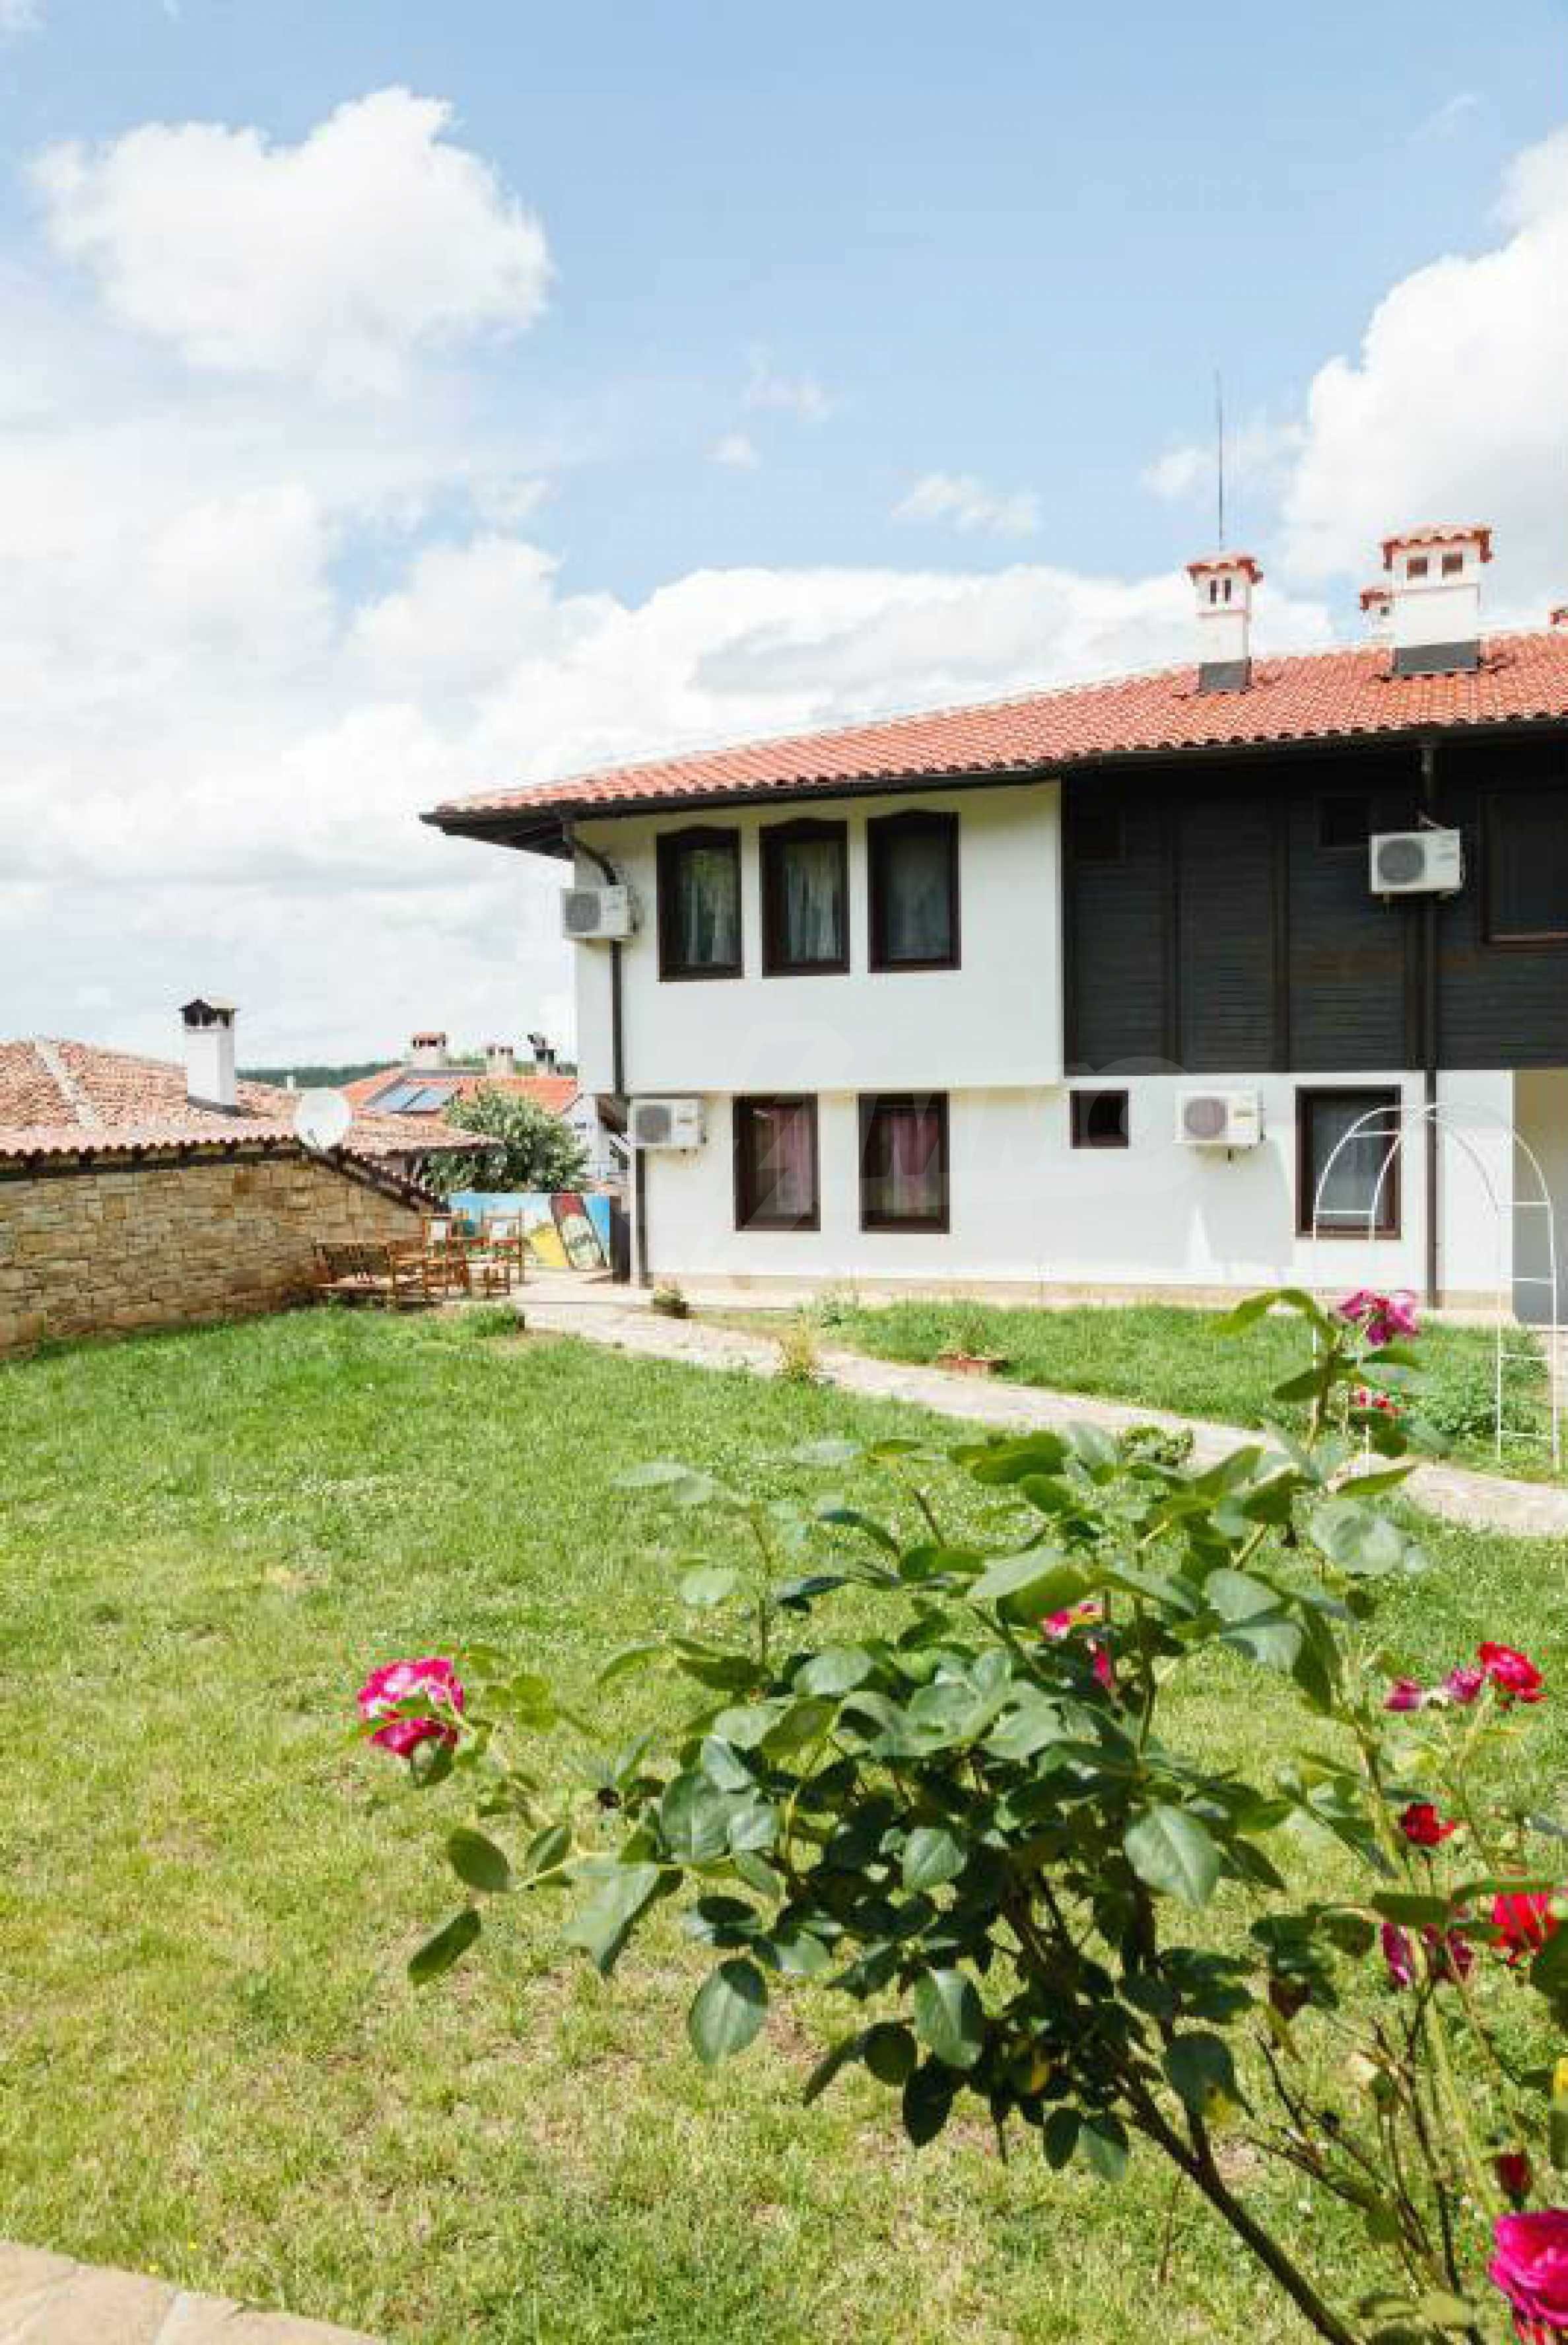 Fully equipped hotel, a restaurant, a house and a yard in the center of popular Arbanassi village 40